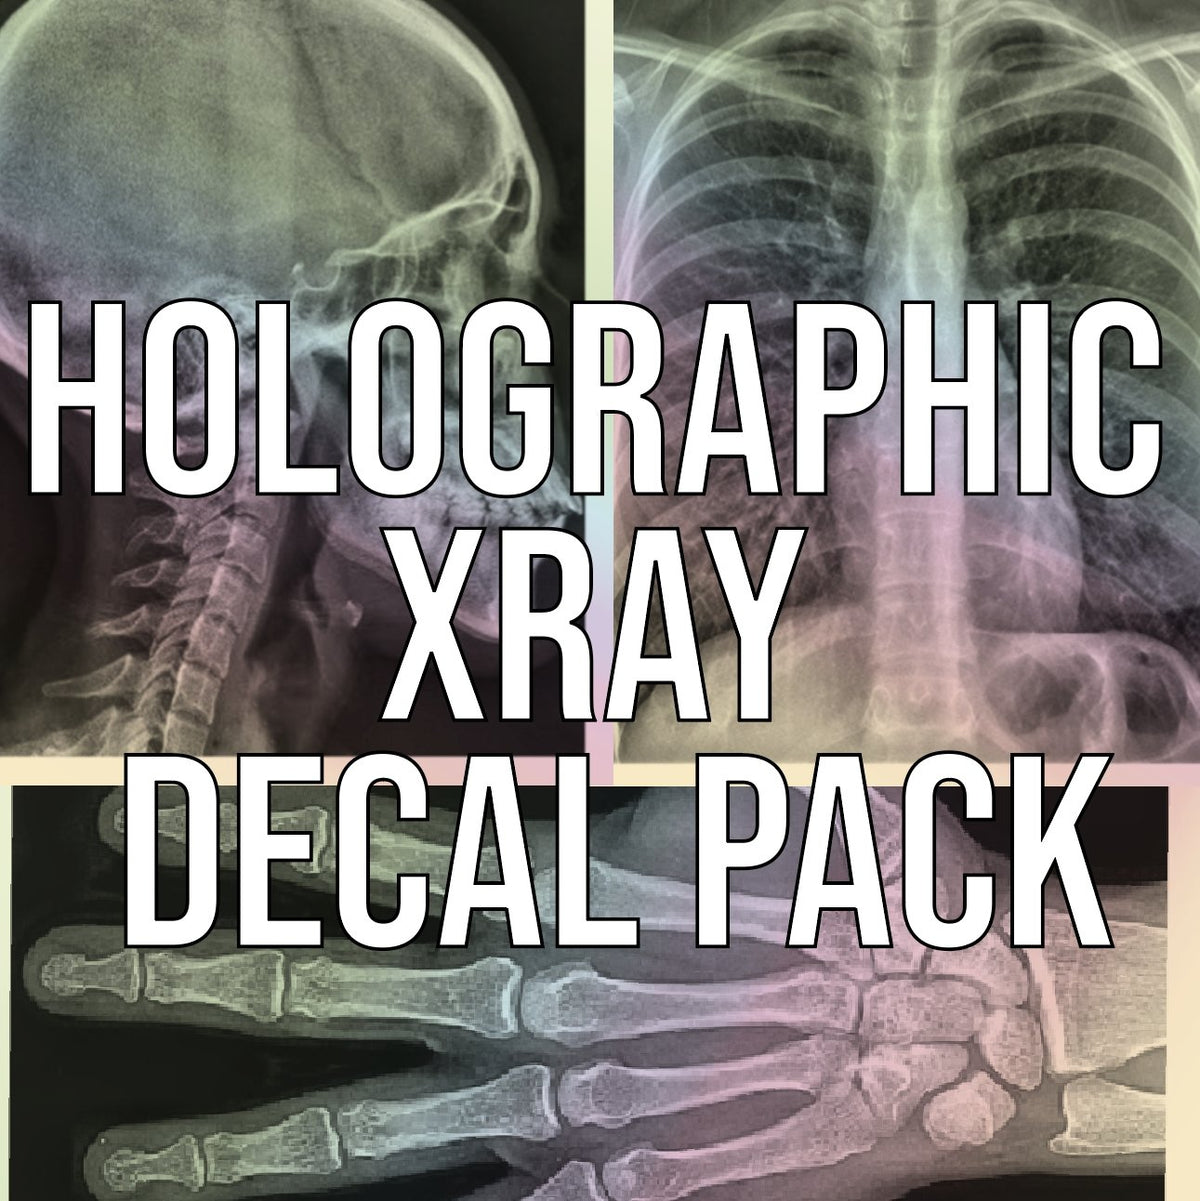 Holographic Xray Decal Pack - Rad Girl Creations